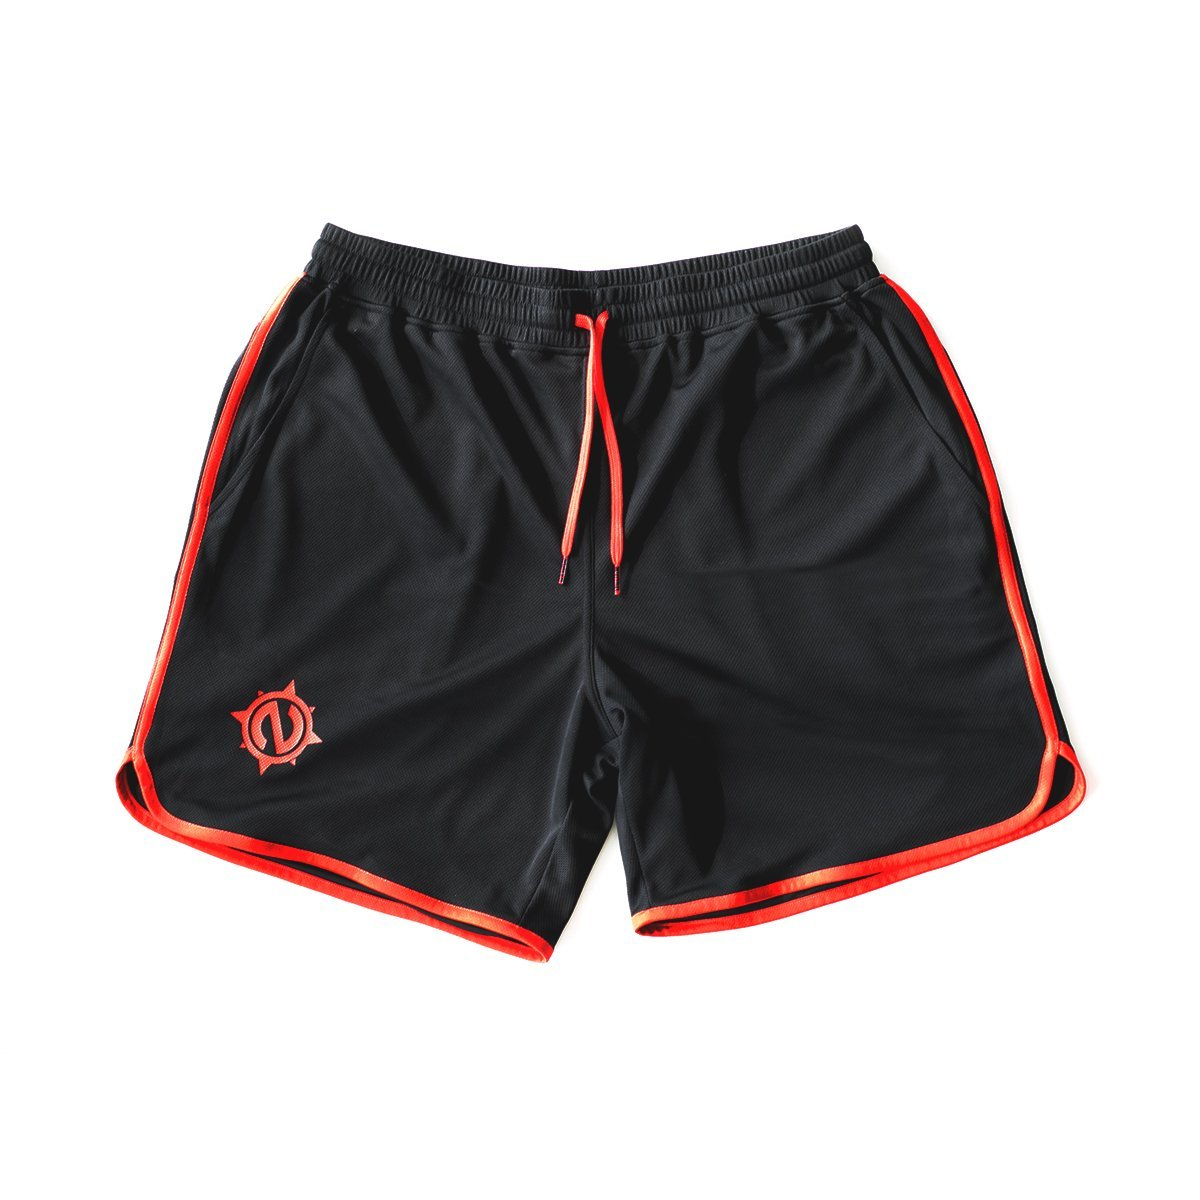 Gym Trunks - Gym Trunks - Black/Red